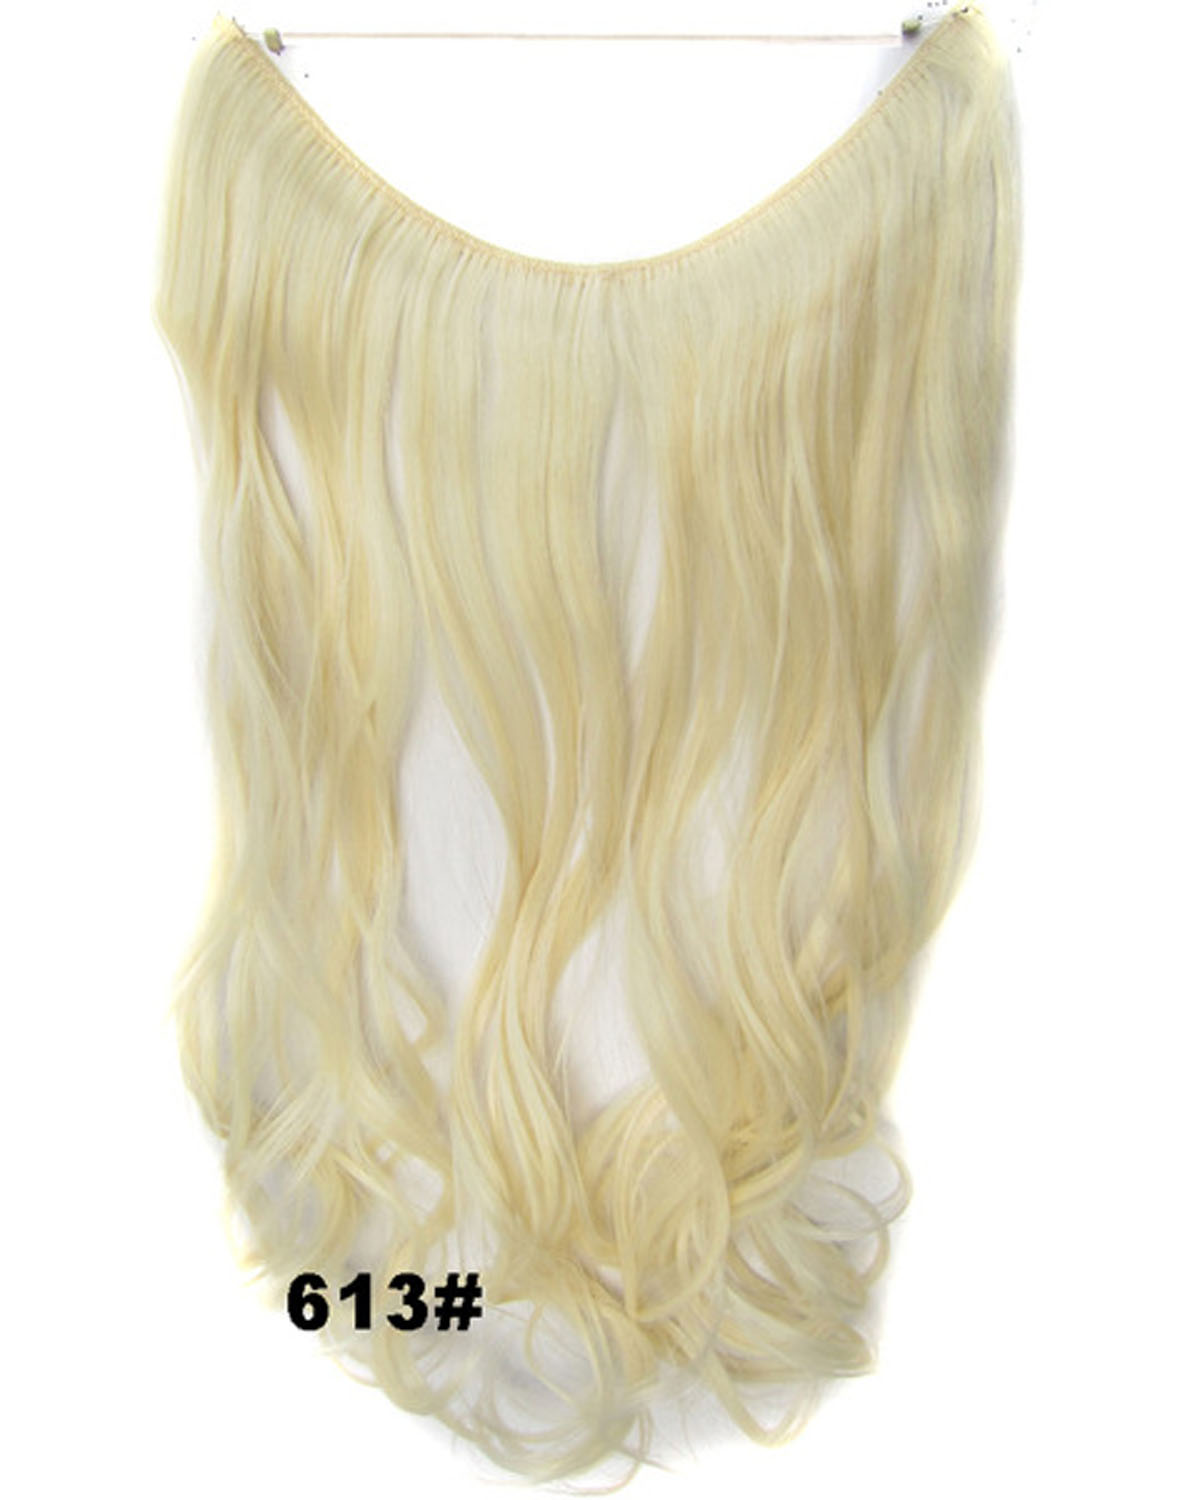 22 Inch Modernish Curly and Long Miracle One Piece Miracle Wire Flip in Synthetic Hair Extension613#